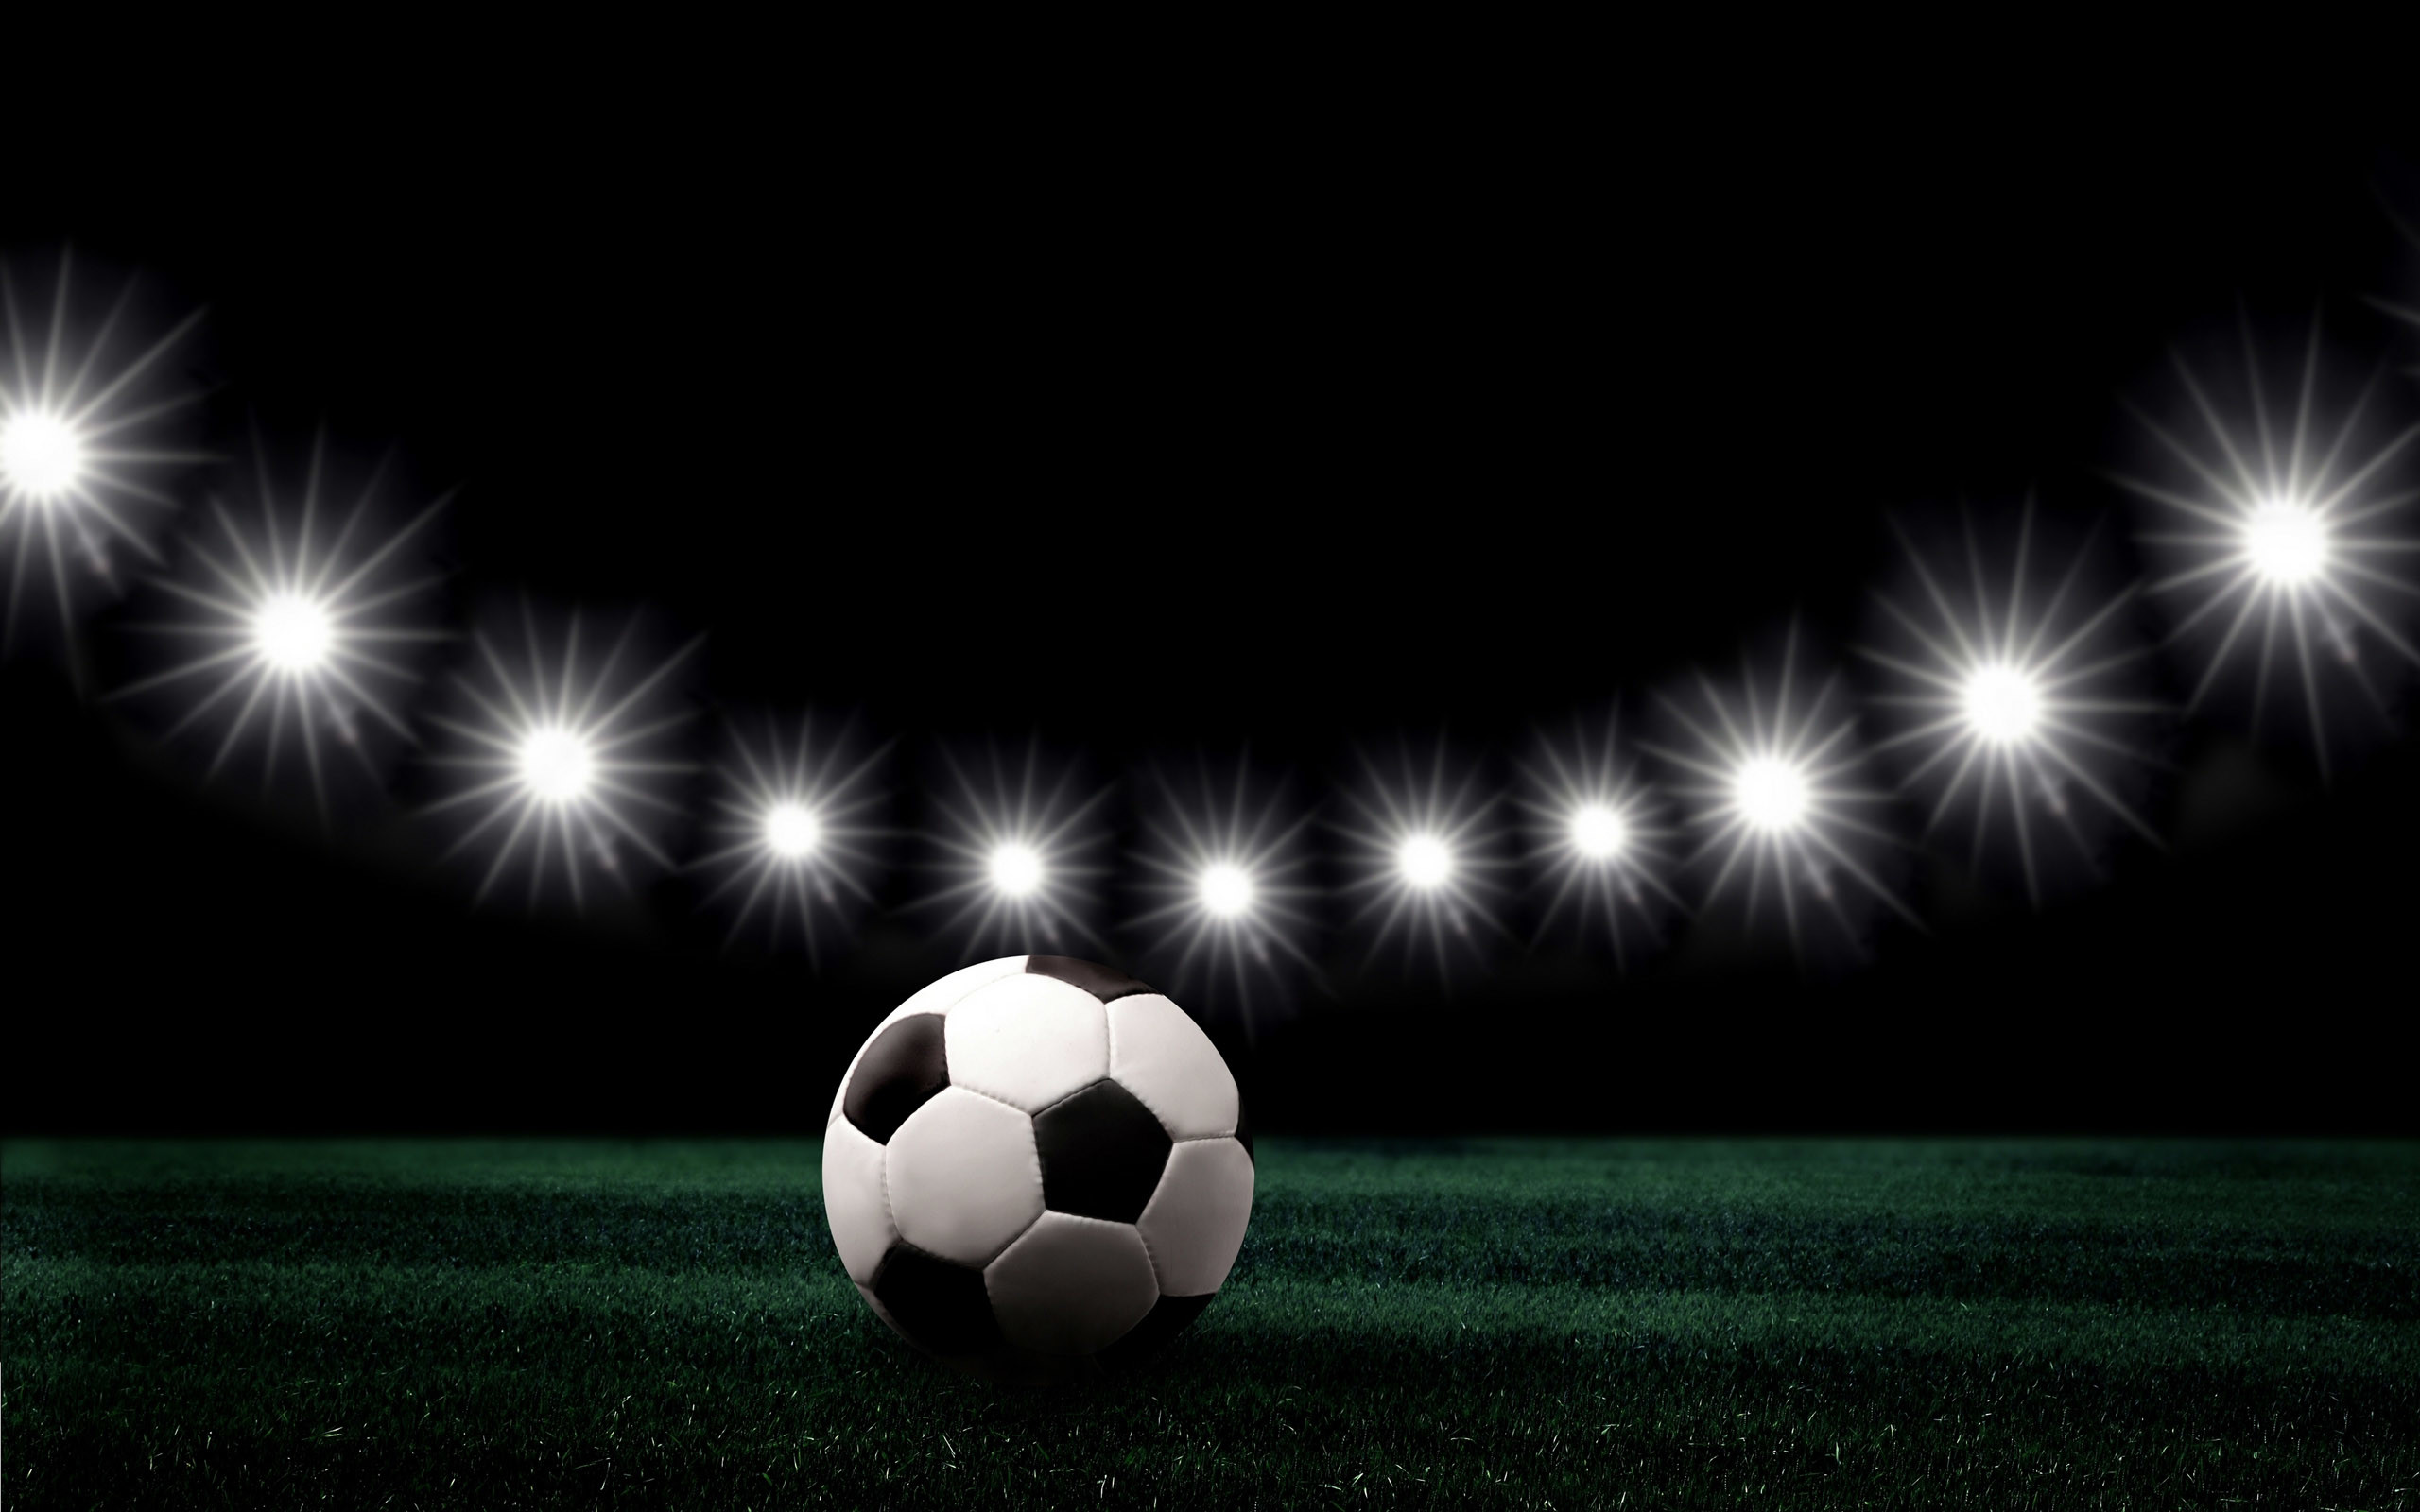 2560x1600 wallpaper.wiki-Download-Free-Cool-Soccer-Image-PIC-